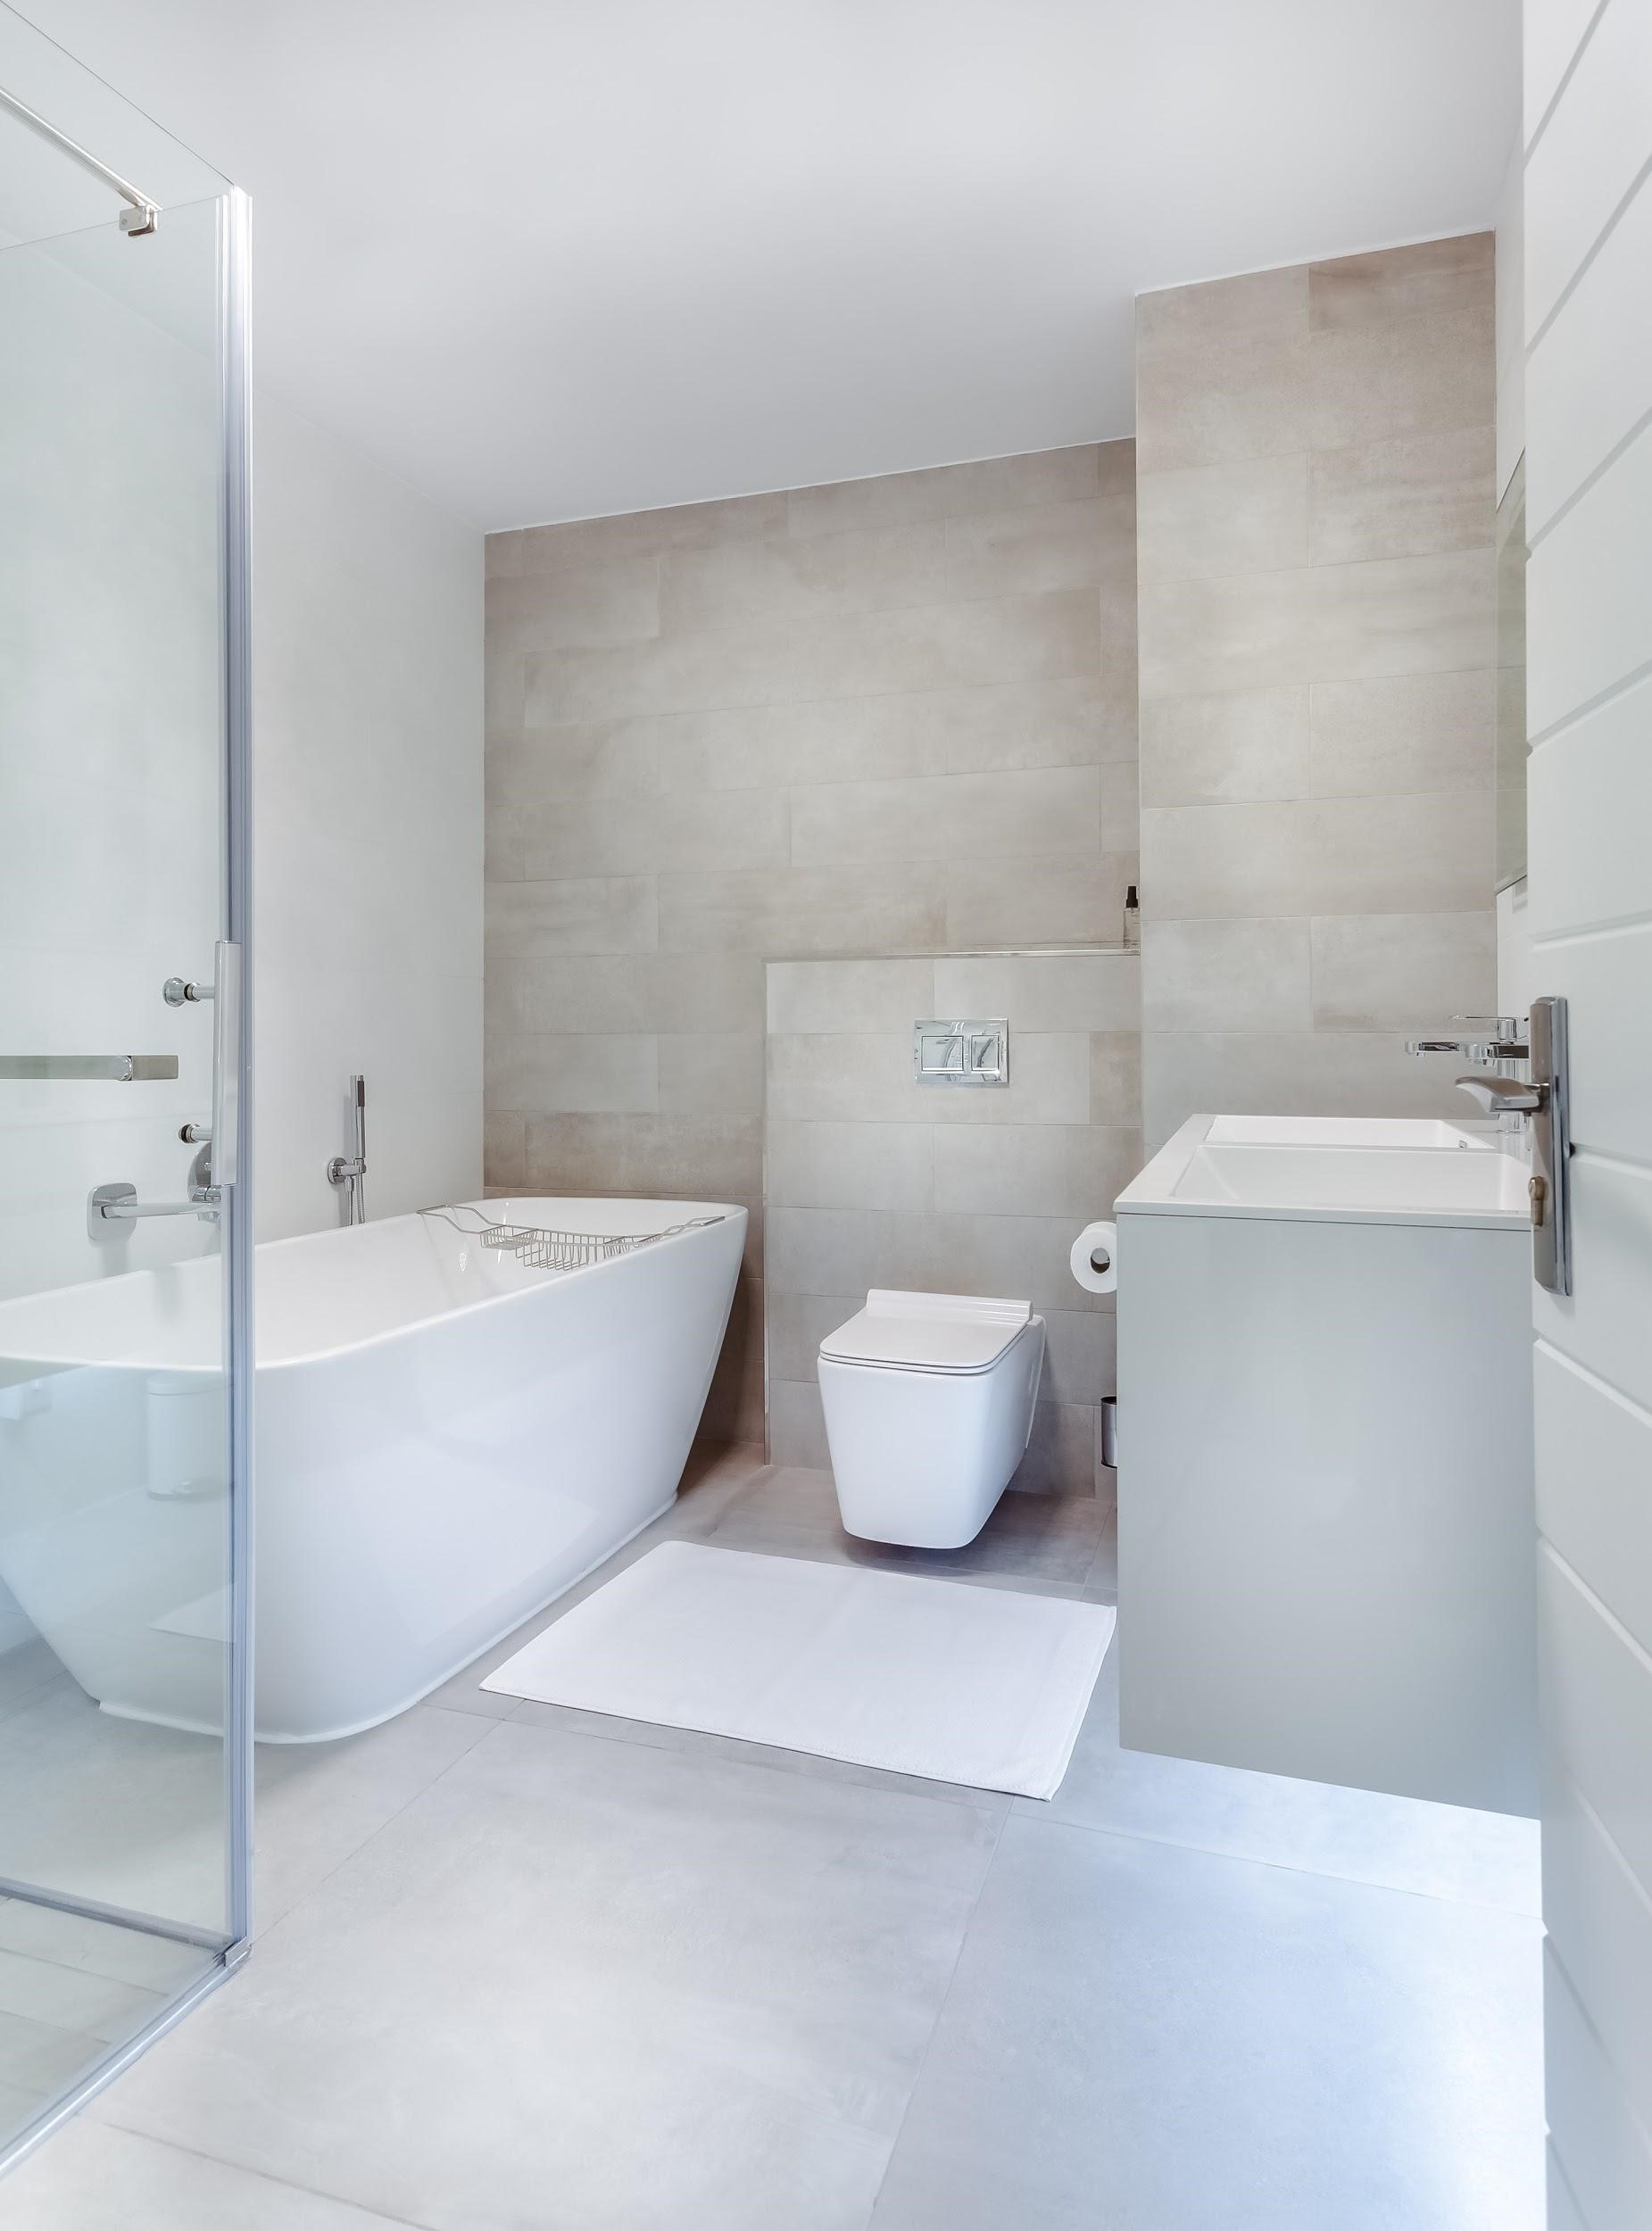 image - 5 Advantages of Hiring a Professional for Bathroom Renovations and Waterproofing